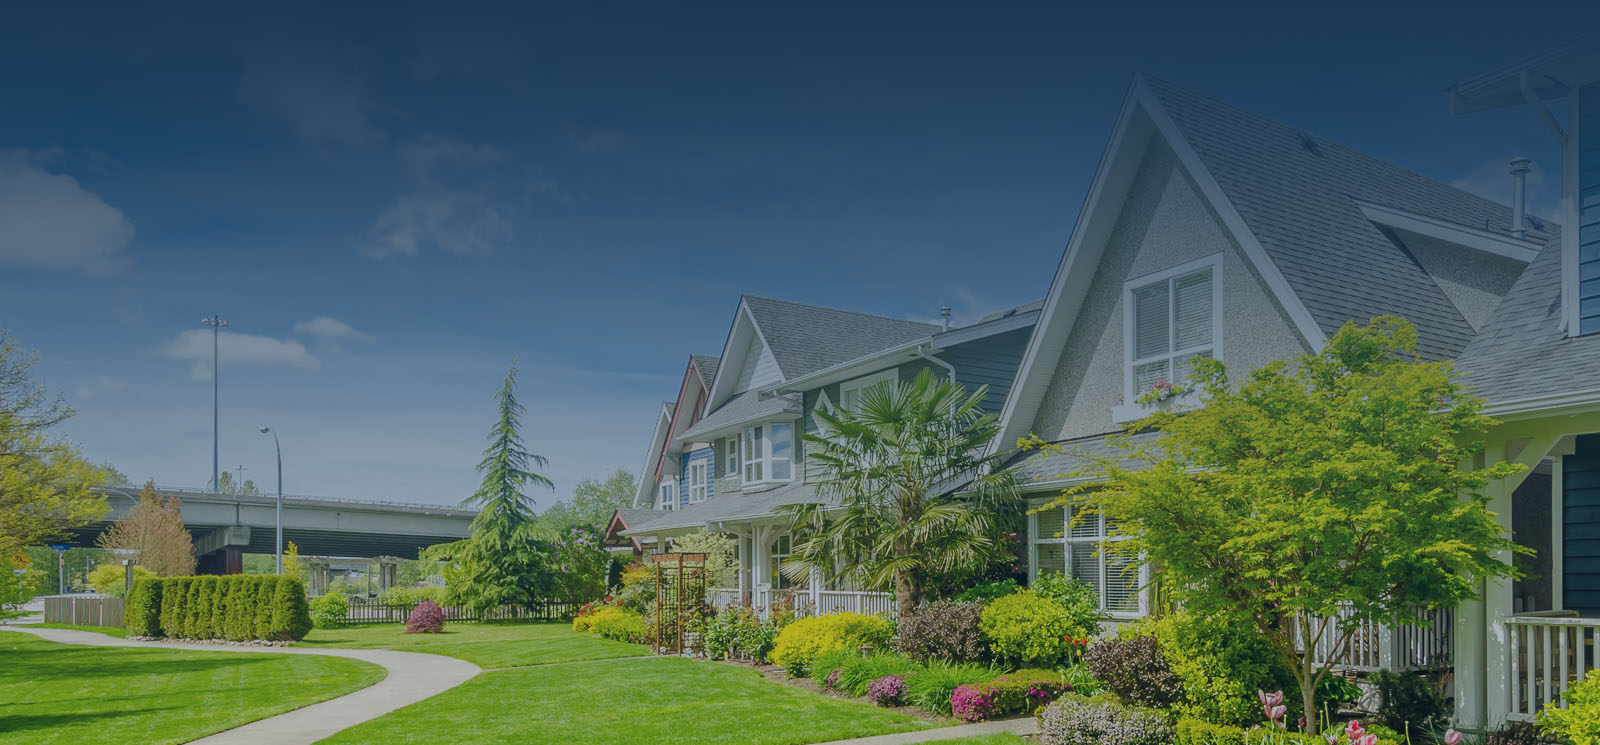 Greenhouse in Oklahoma